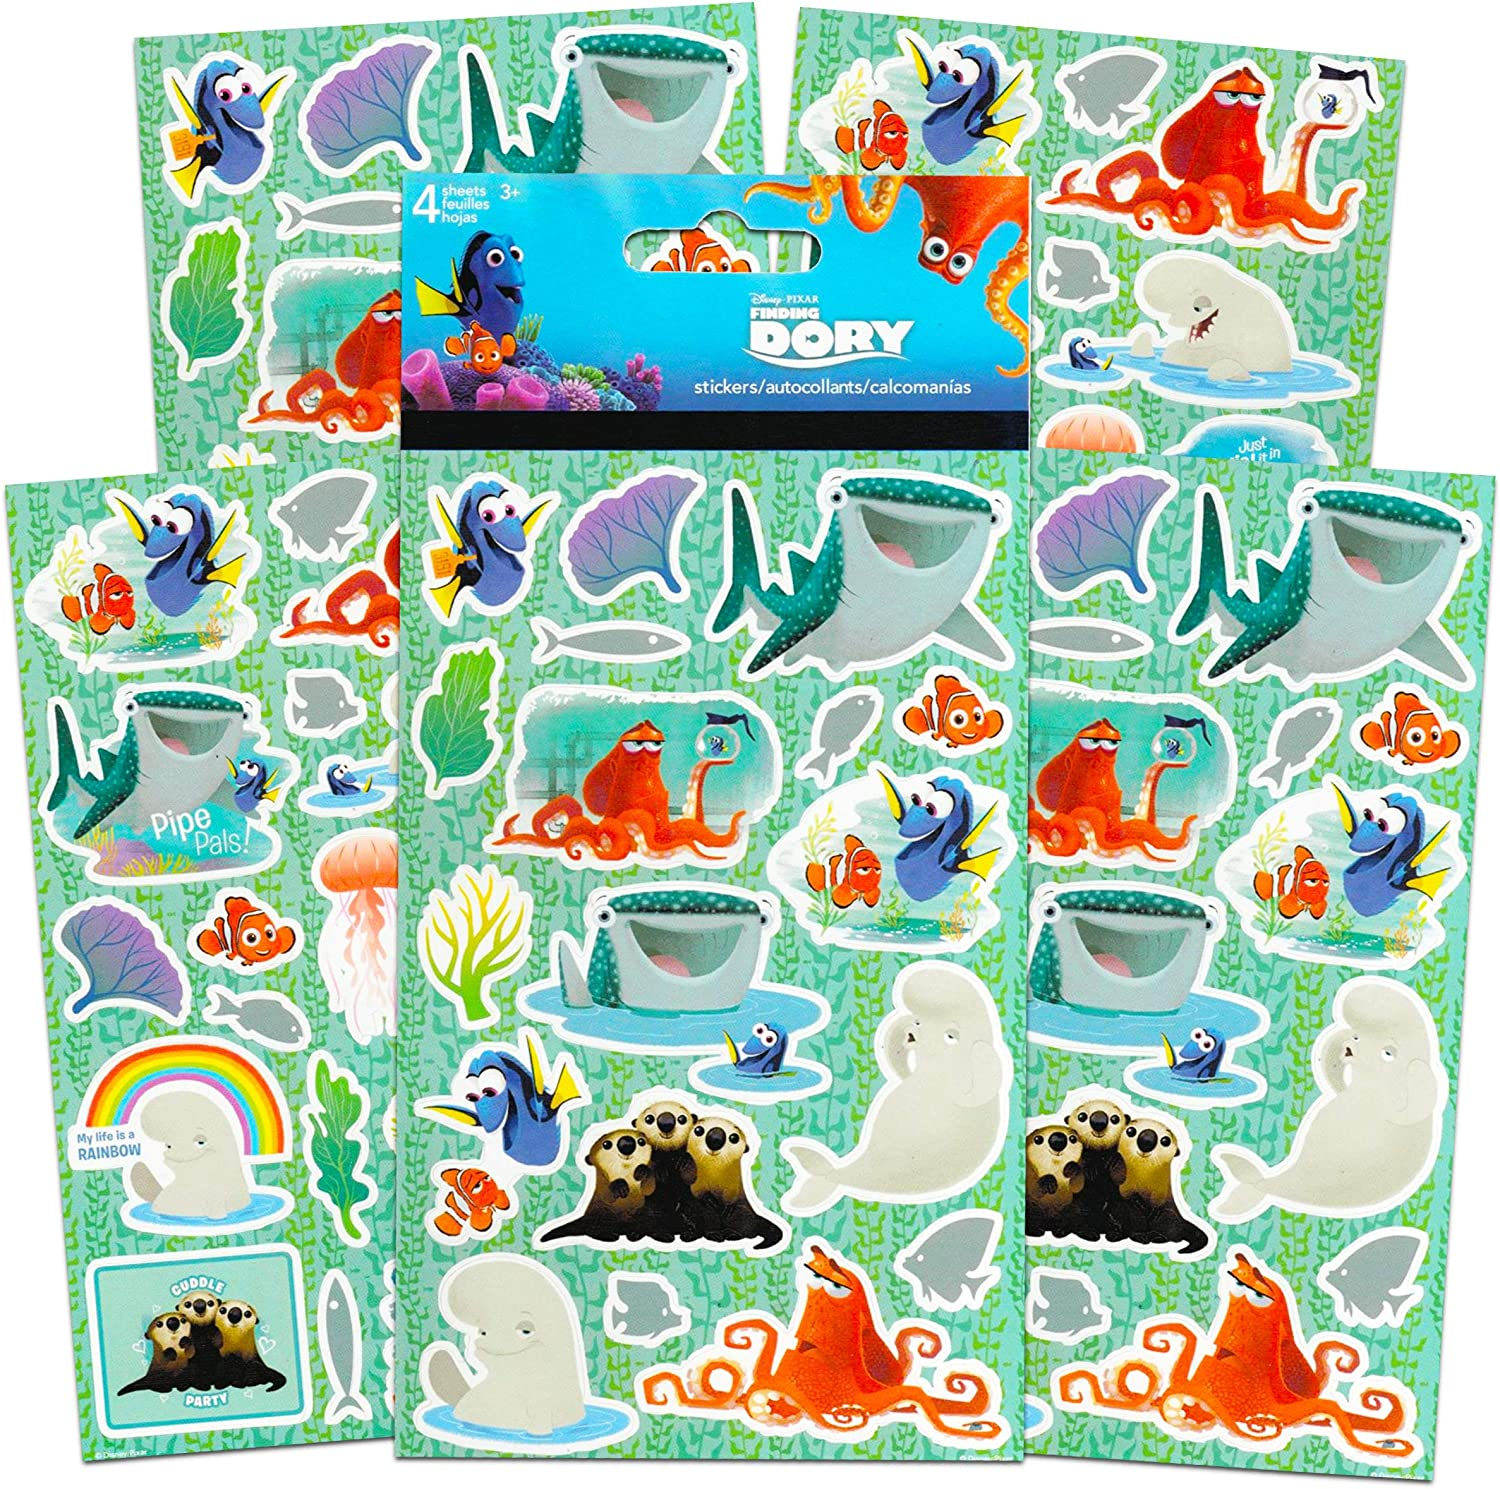 Disney Storybook Collection Disney Baby Board Book Set Disney Story Book Bundle ~ 9 Pack Disney Baby My First Library Board Block Books for Toddlers Kids Infants with Disney Reward Stickers